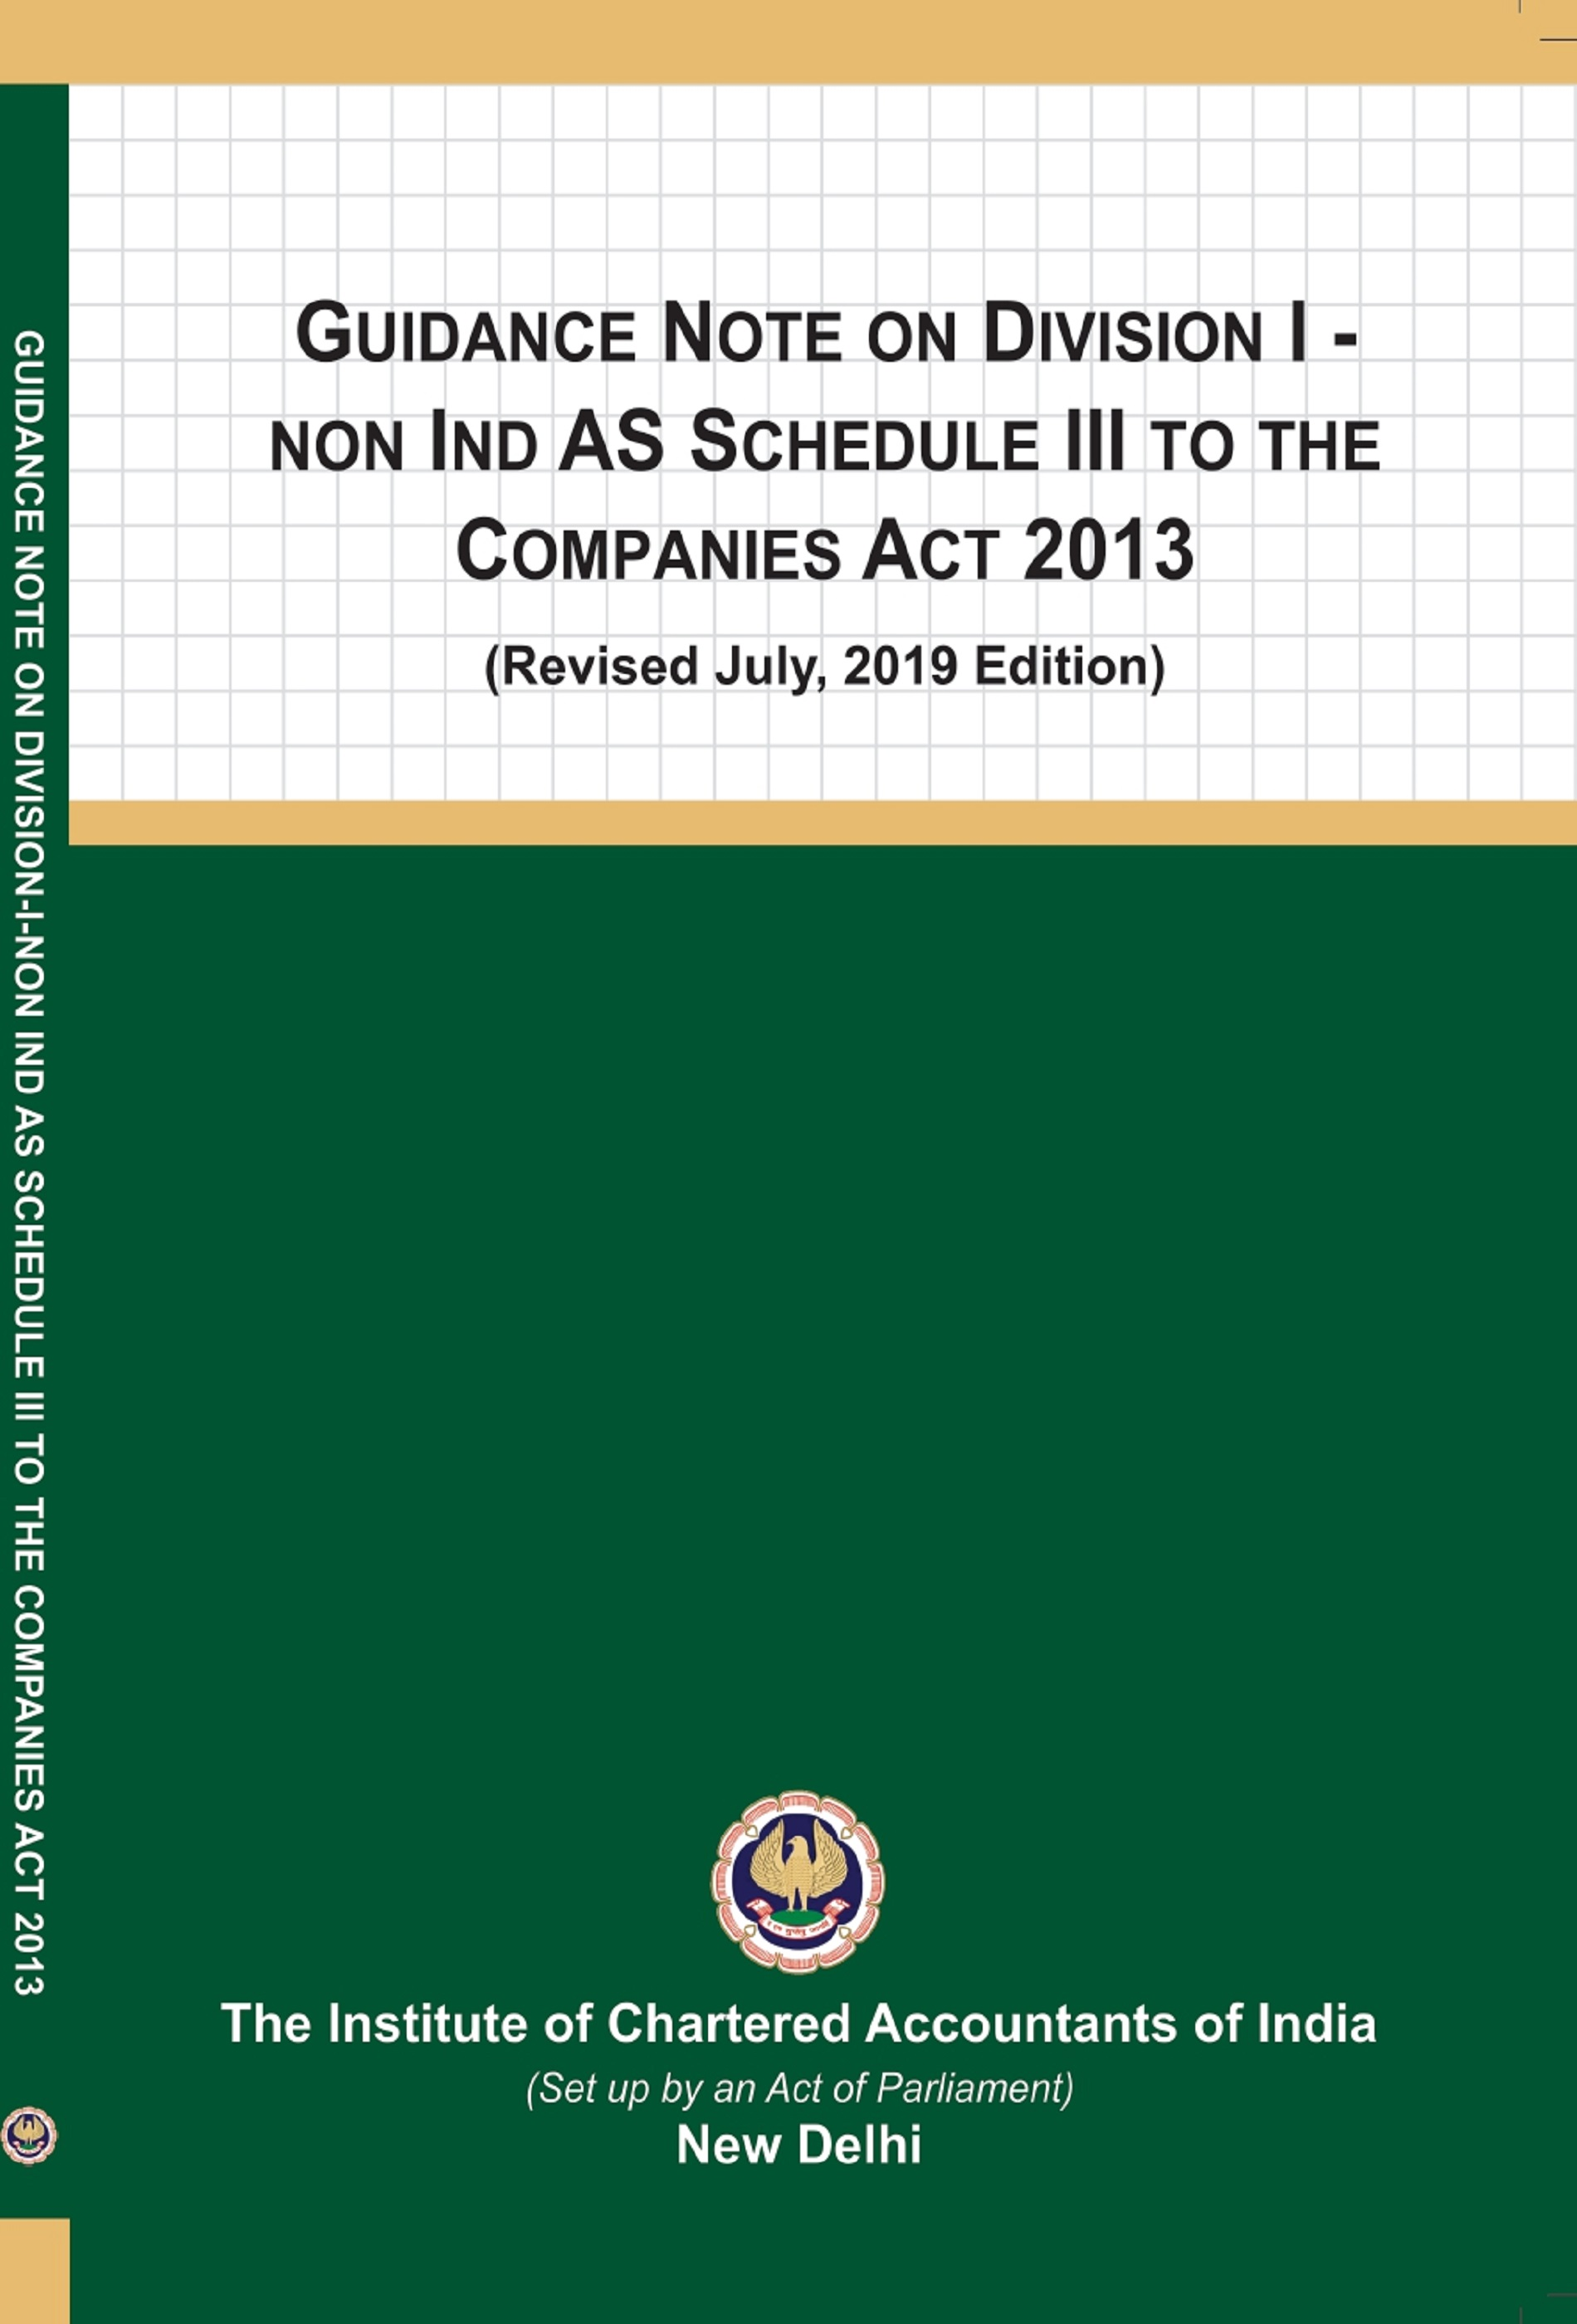 Guidance Note on Division I - Non Ind AS Schedule III to The Companies Act, 2013 (Revised July, 2019 Edition)